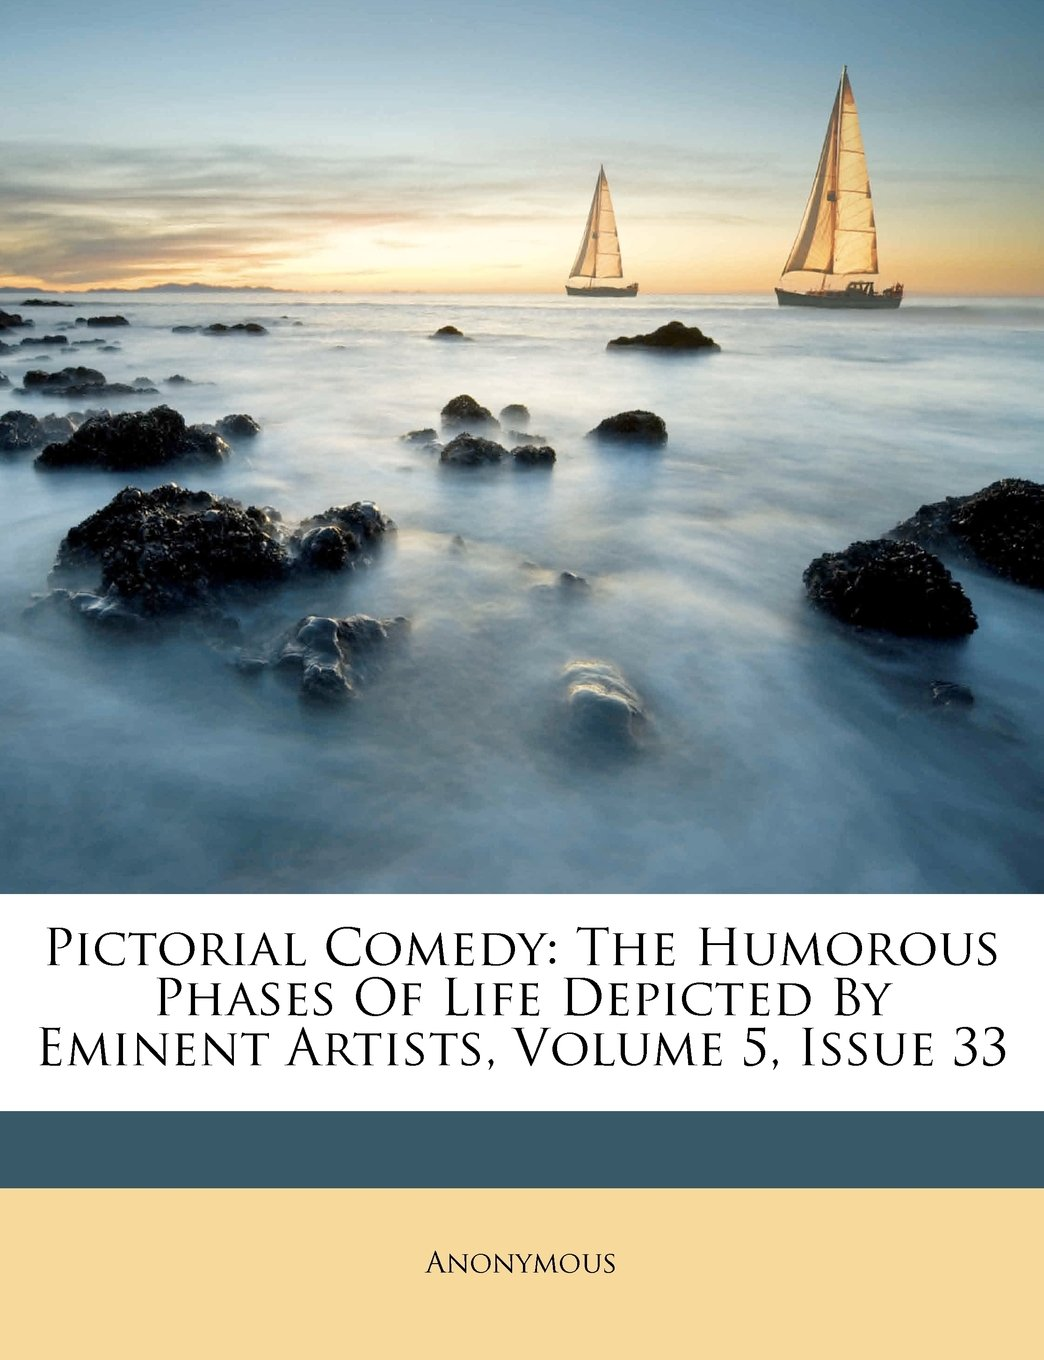 Pictorial Comedy: The Humorous Phases Of Life Depicted By Eminent Artists, Volume 5, Issue 33 pdf